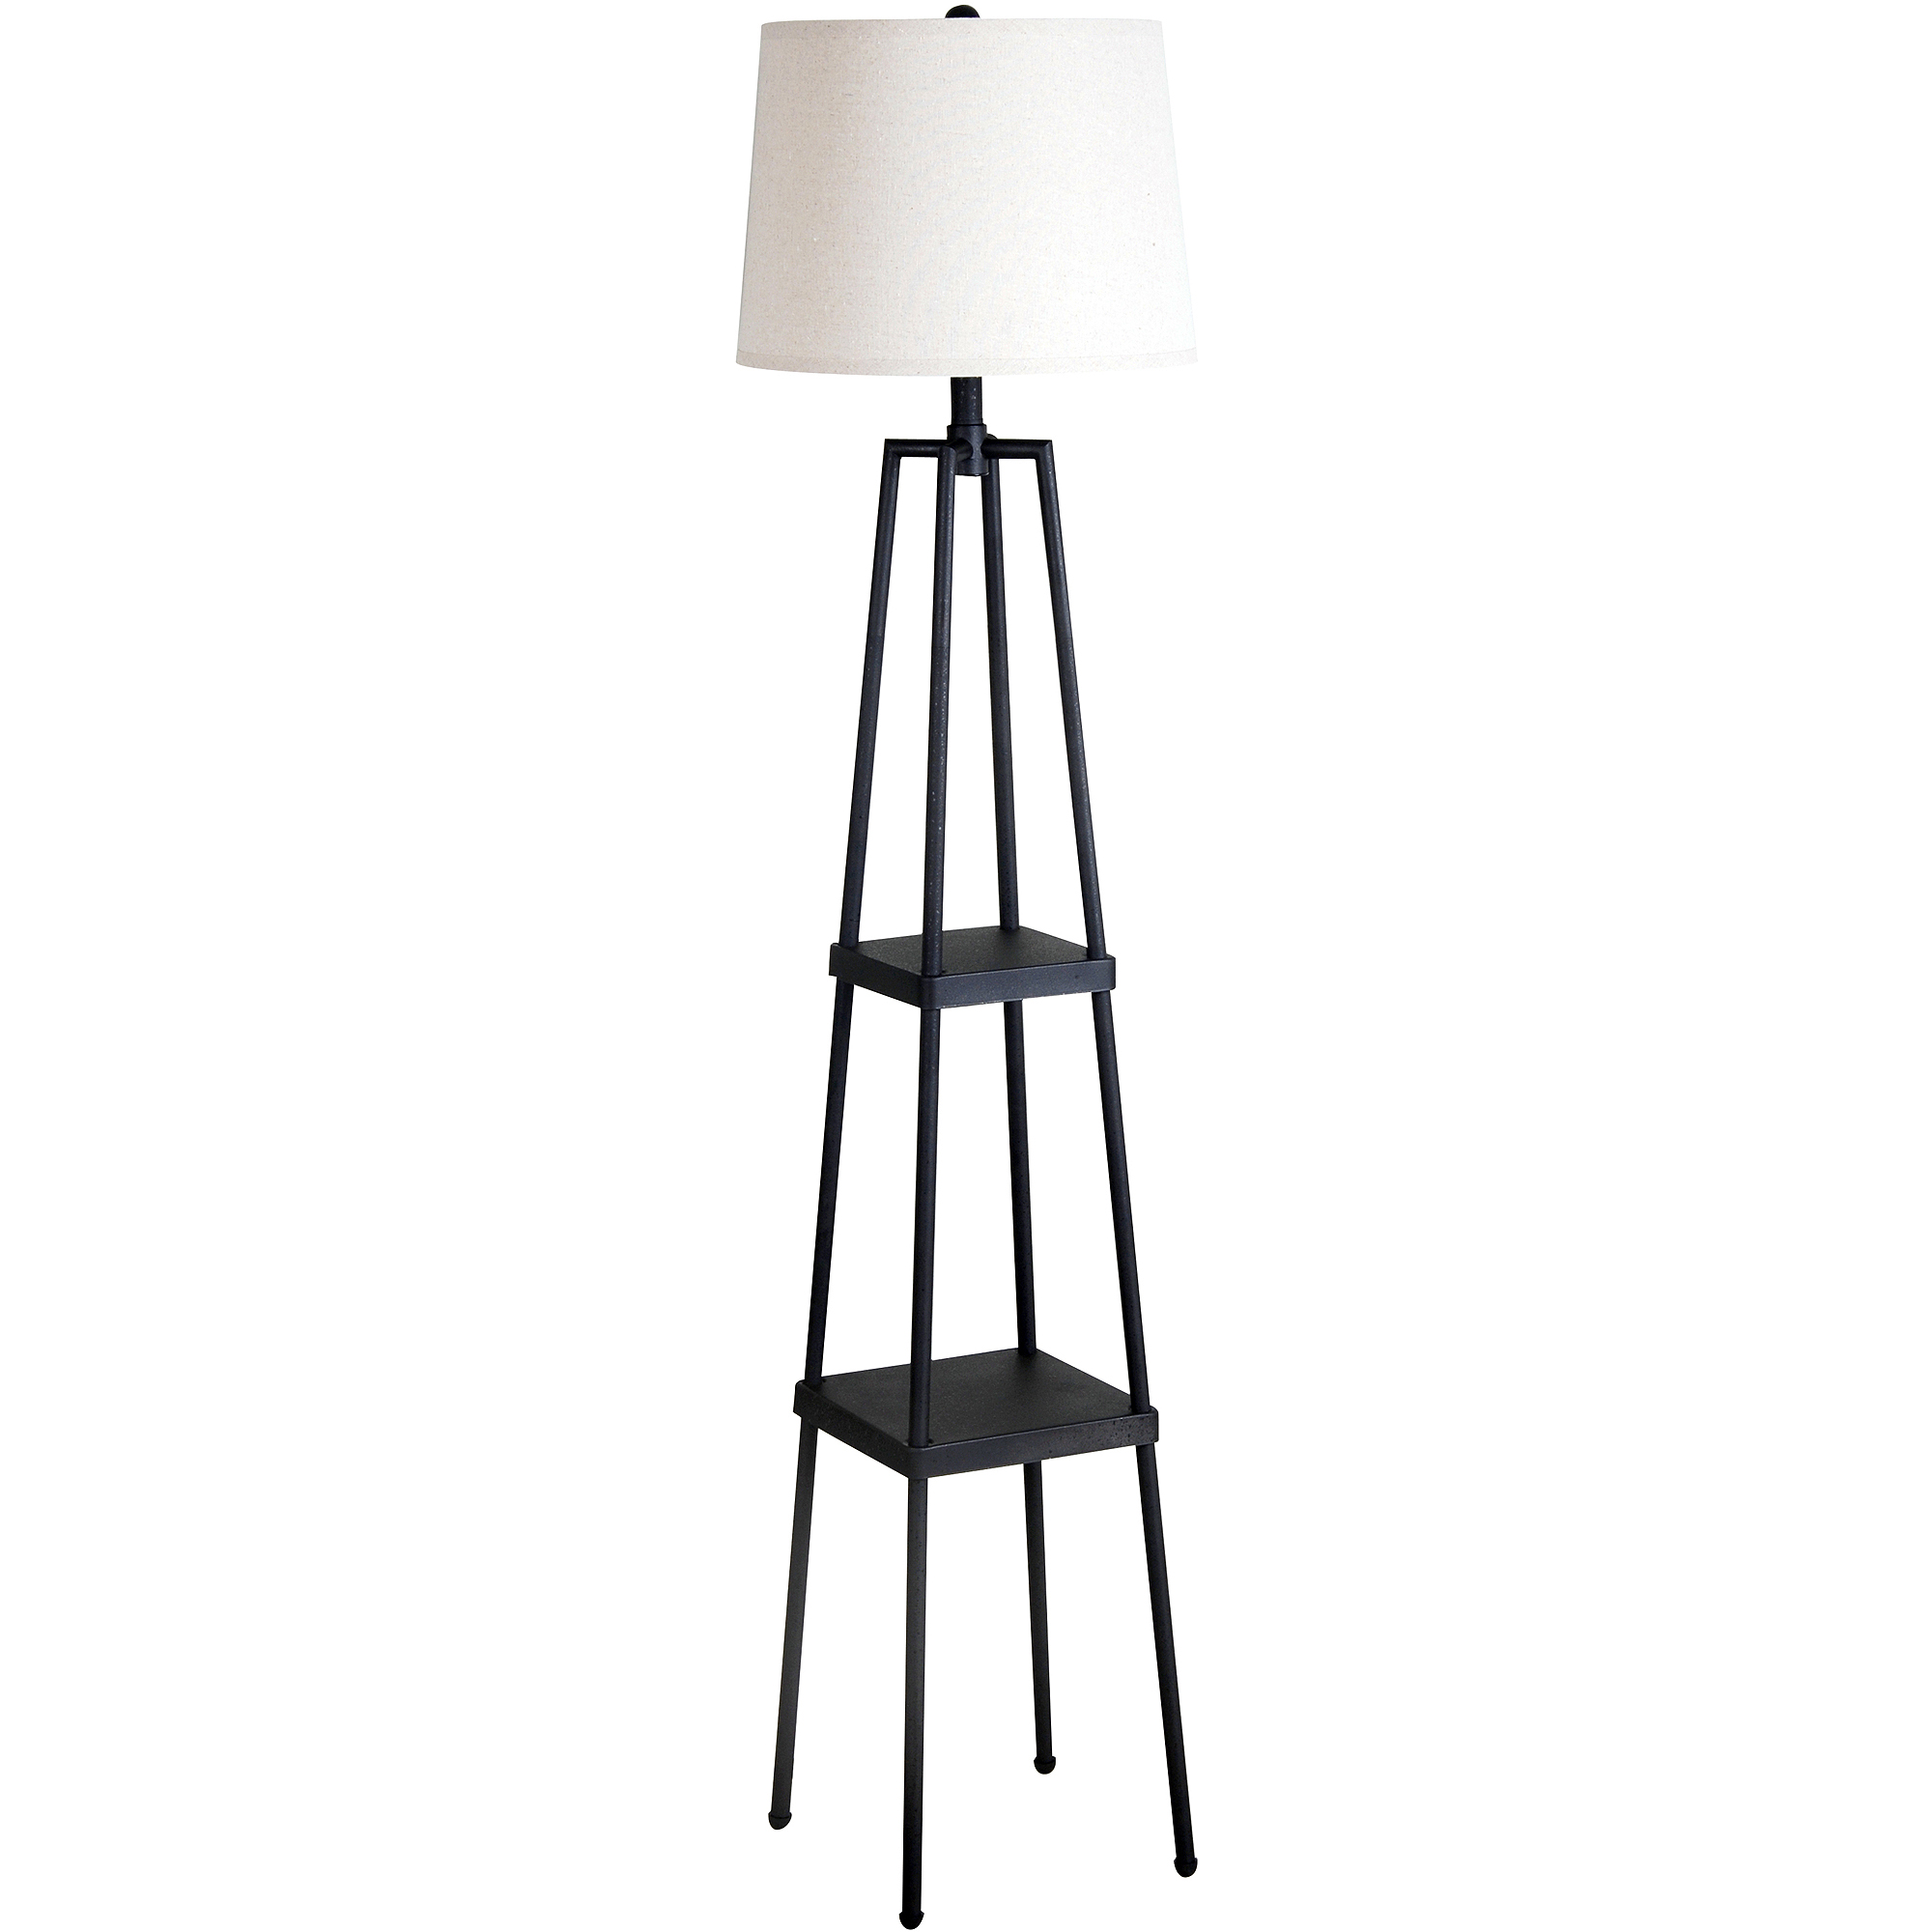 White Floor Lamp With Shelves Mainstays Black Shelf Floor Lamp With White Shade On Off